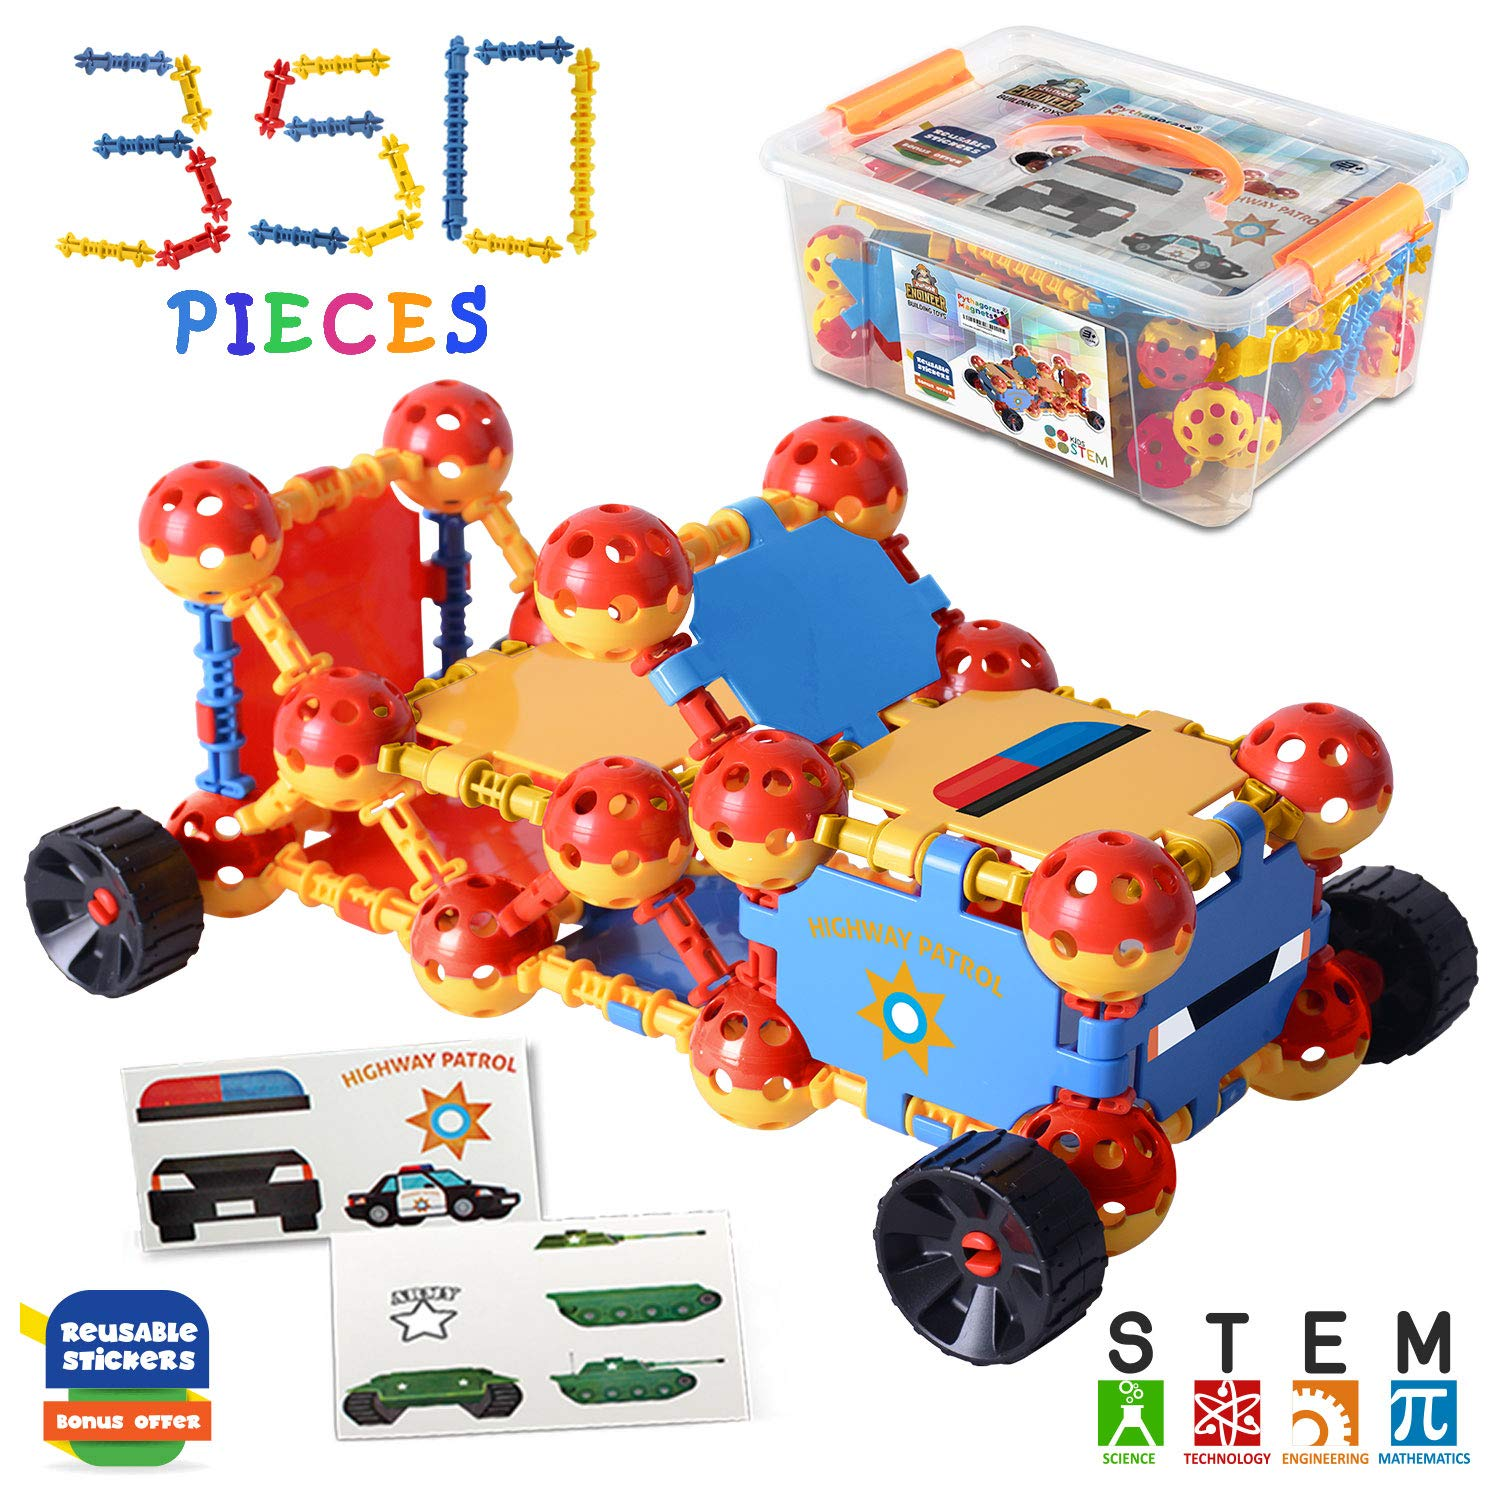 Kids Education Construction--Connecting Building Toys For Kids, 175 Piece Construction Toys For Boys And Girls Ages 3 4 5 6 7 8 9 10 Years Old Best Engineering Click Interlocking Toys (350-PCS)